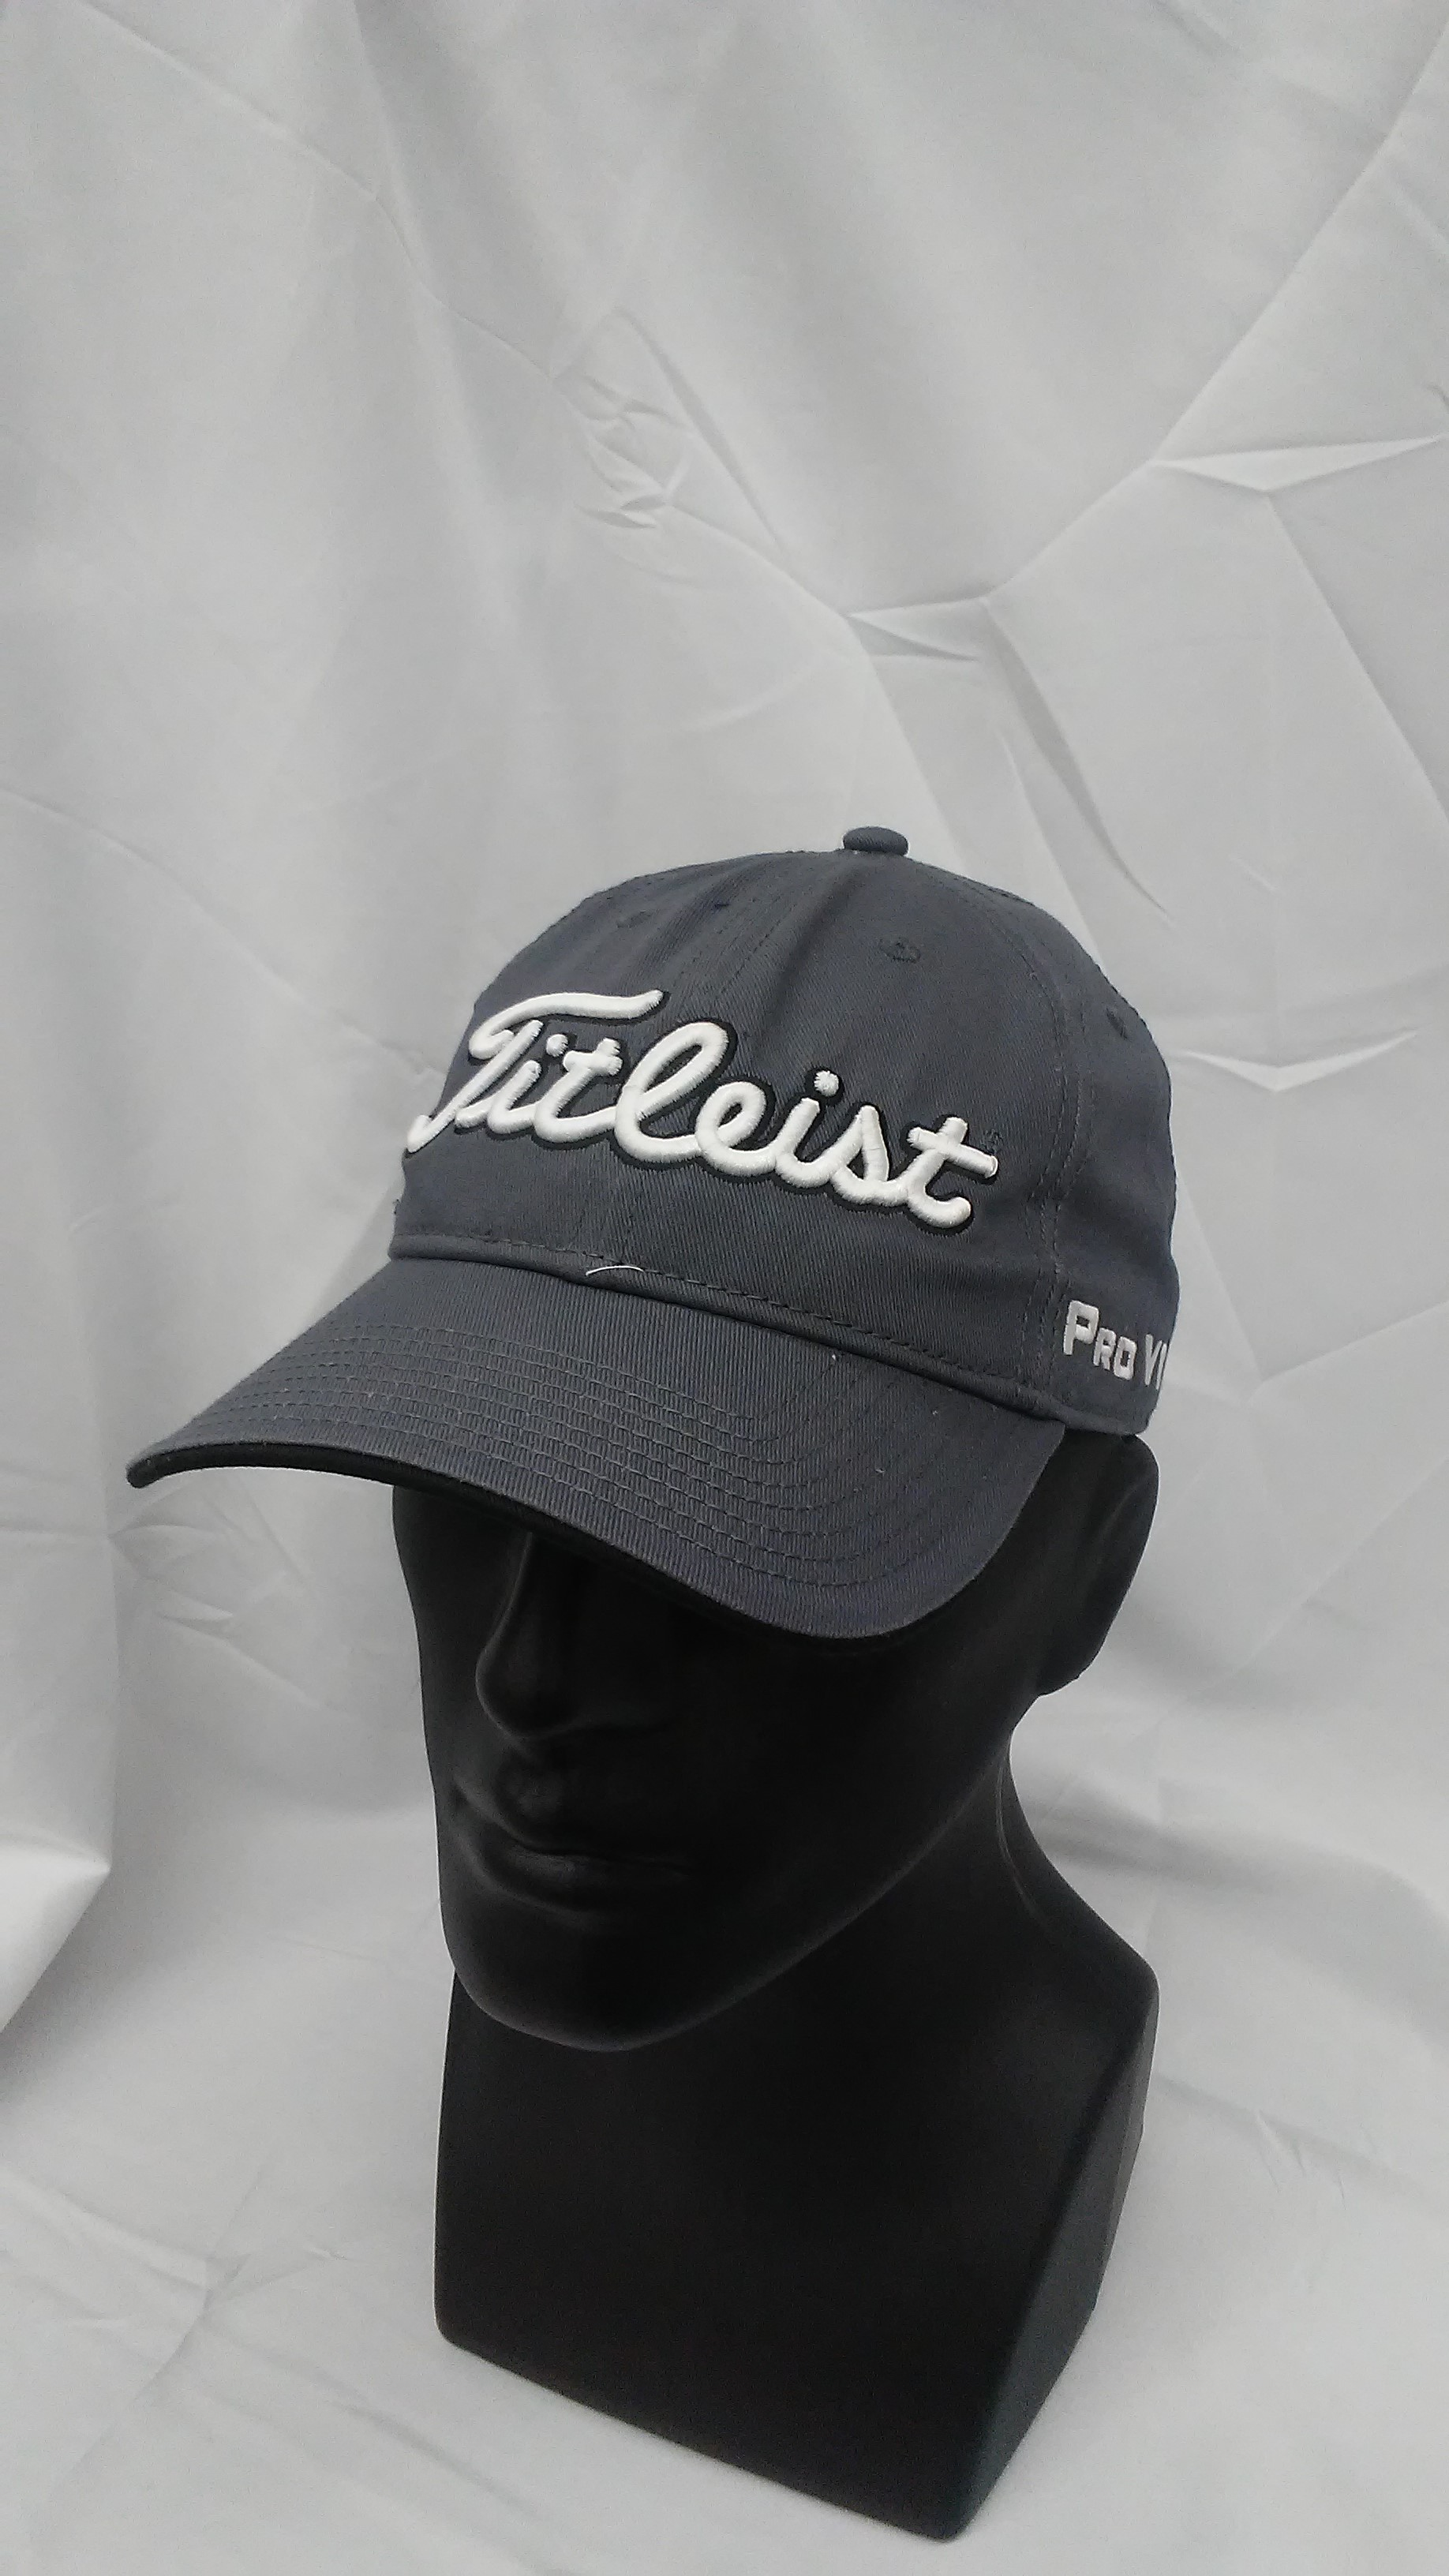 1dcf4796e3a Visit our eBay Store for more great deals  Hurricane Golf New Titleist Golf  Tour Adjustable Hat Charcoal PRO V1   FootJoy Logos BUY IT NOW  17.99!